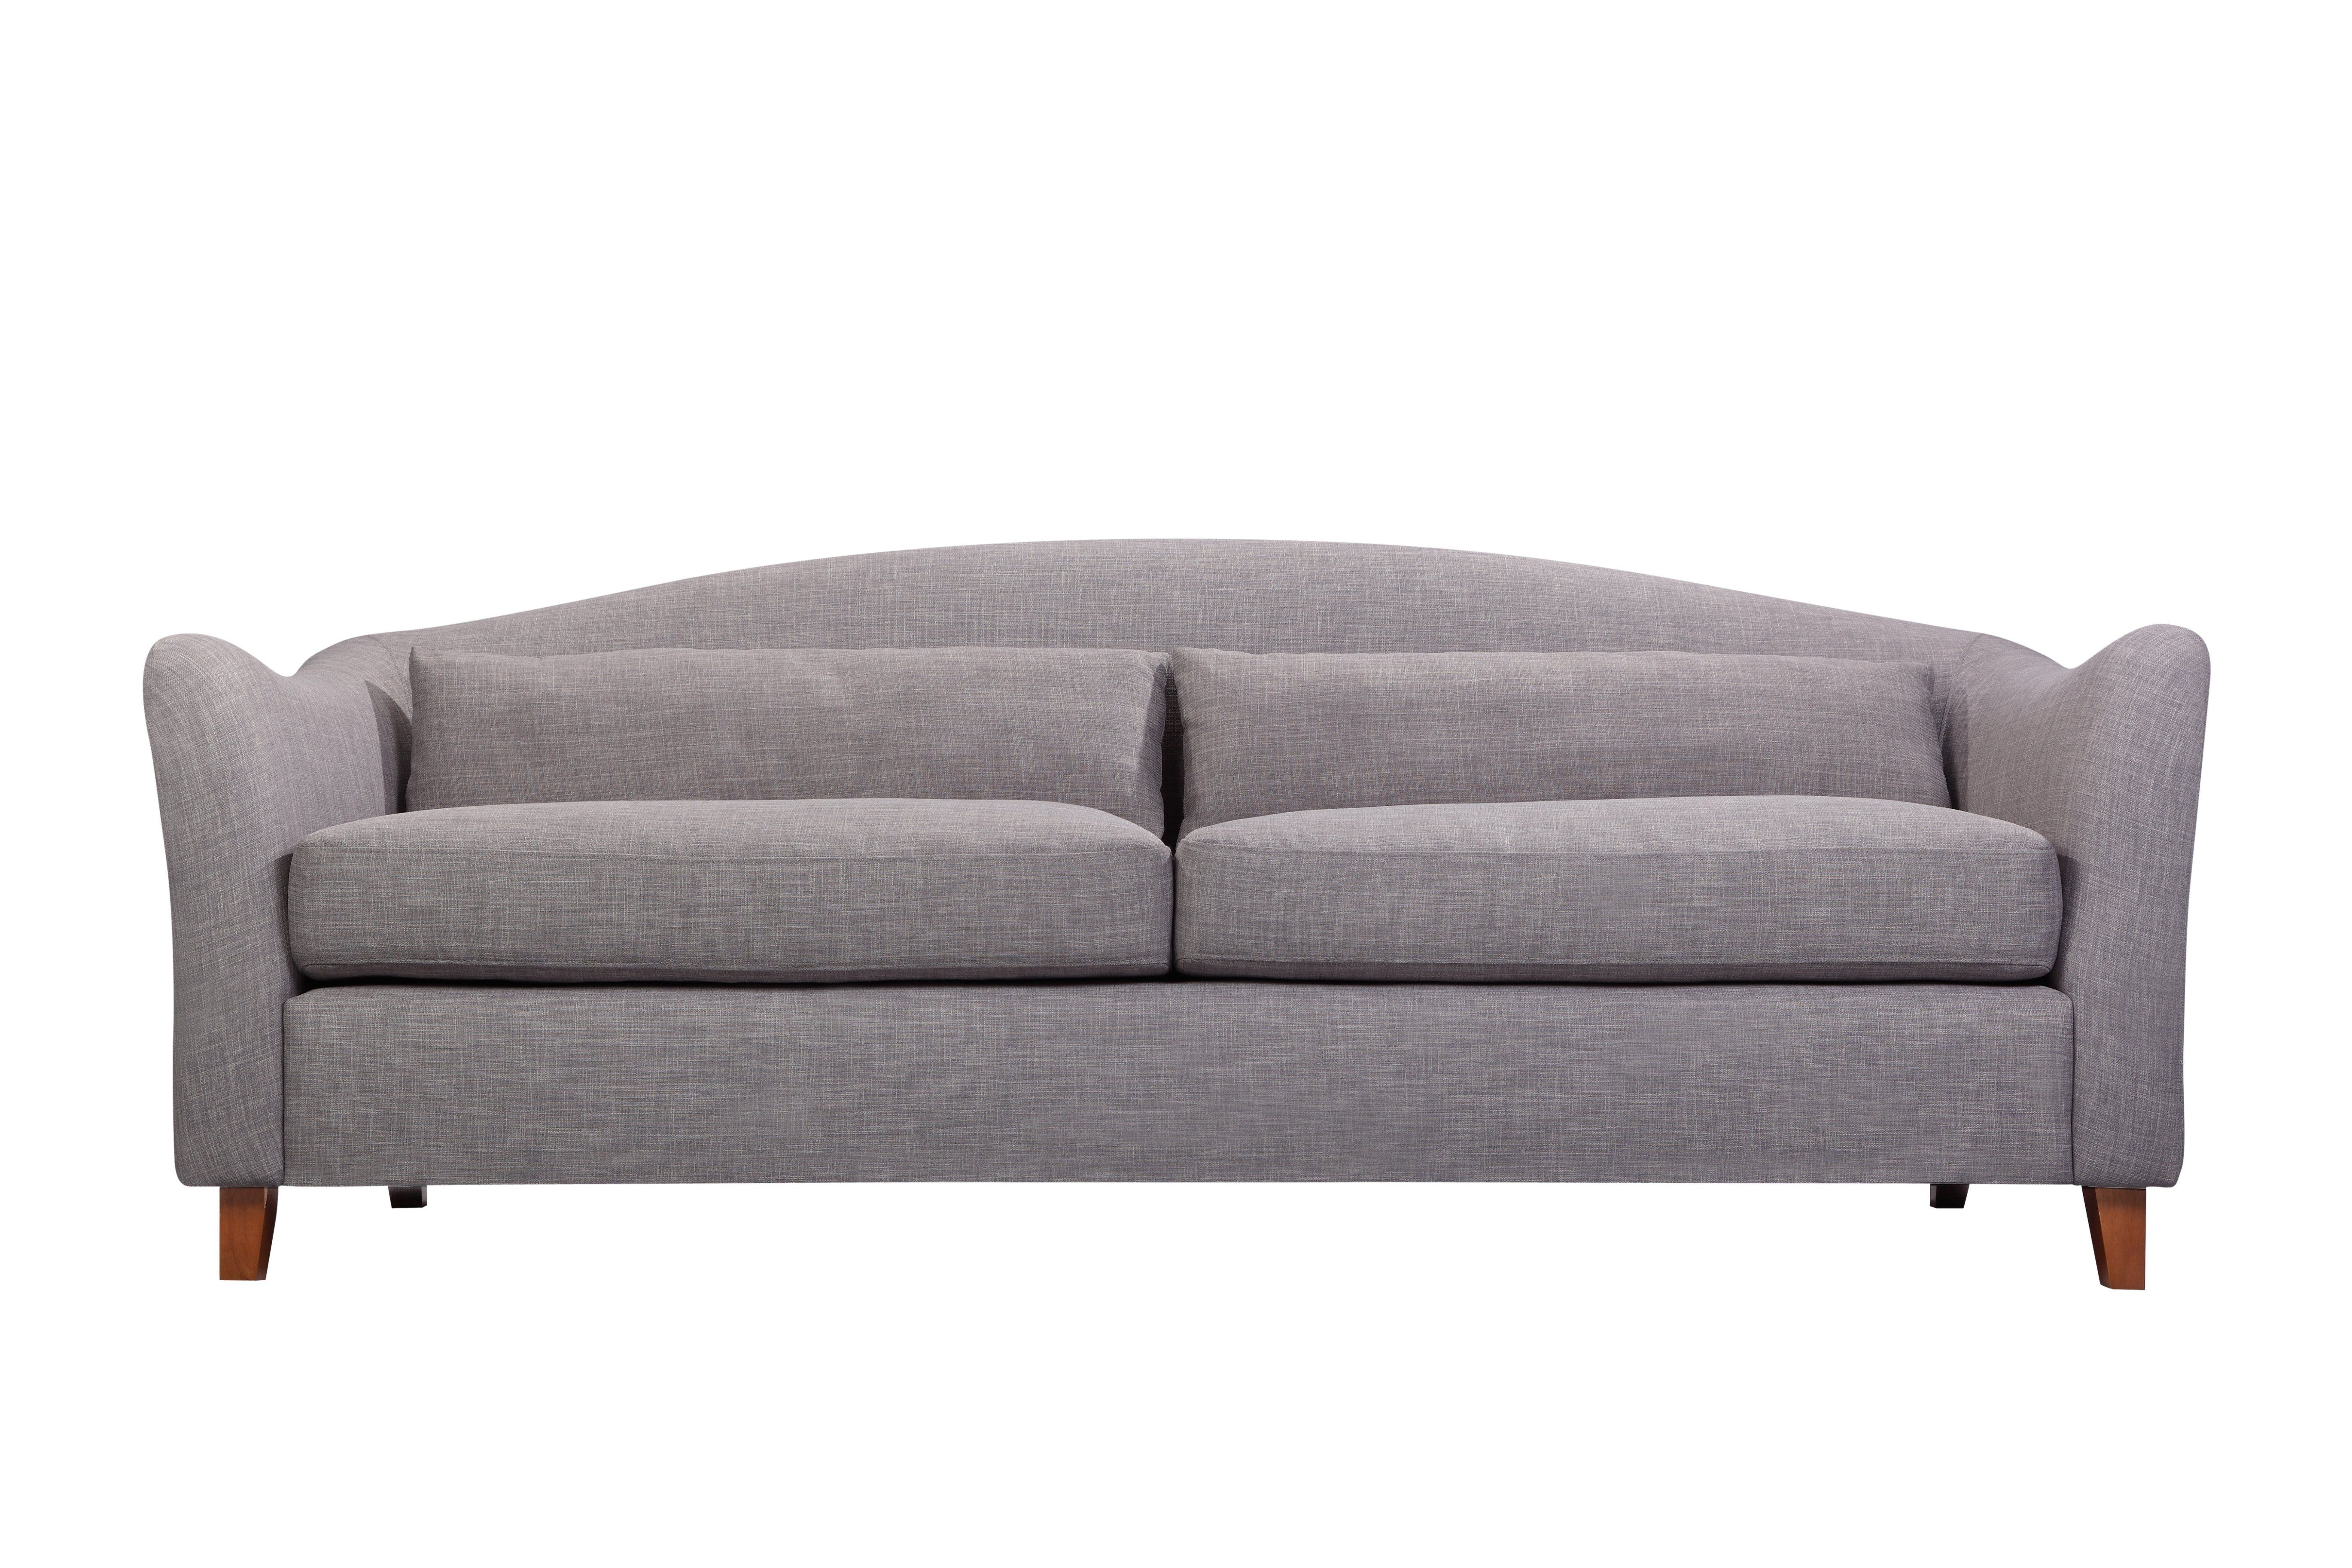 Collin Sofa | Products For Collins Sofa Sectionals With Reversible Chaise (View 7 of 30)